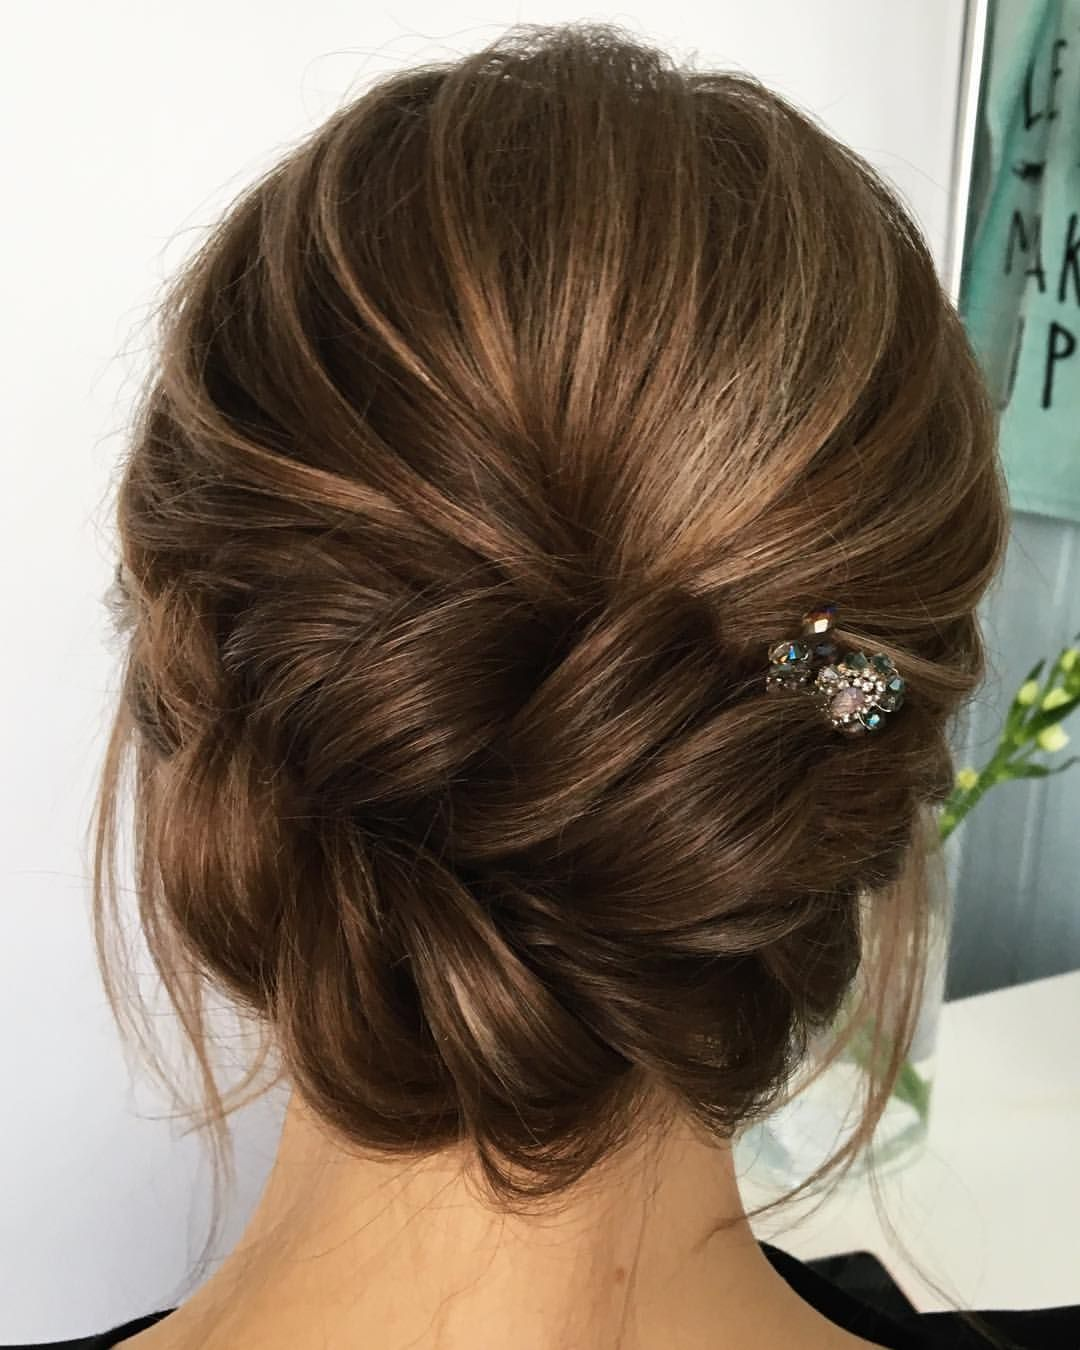 Pin by s walnut on beauty pinterest hair styles hair and